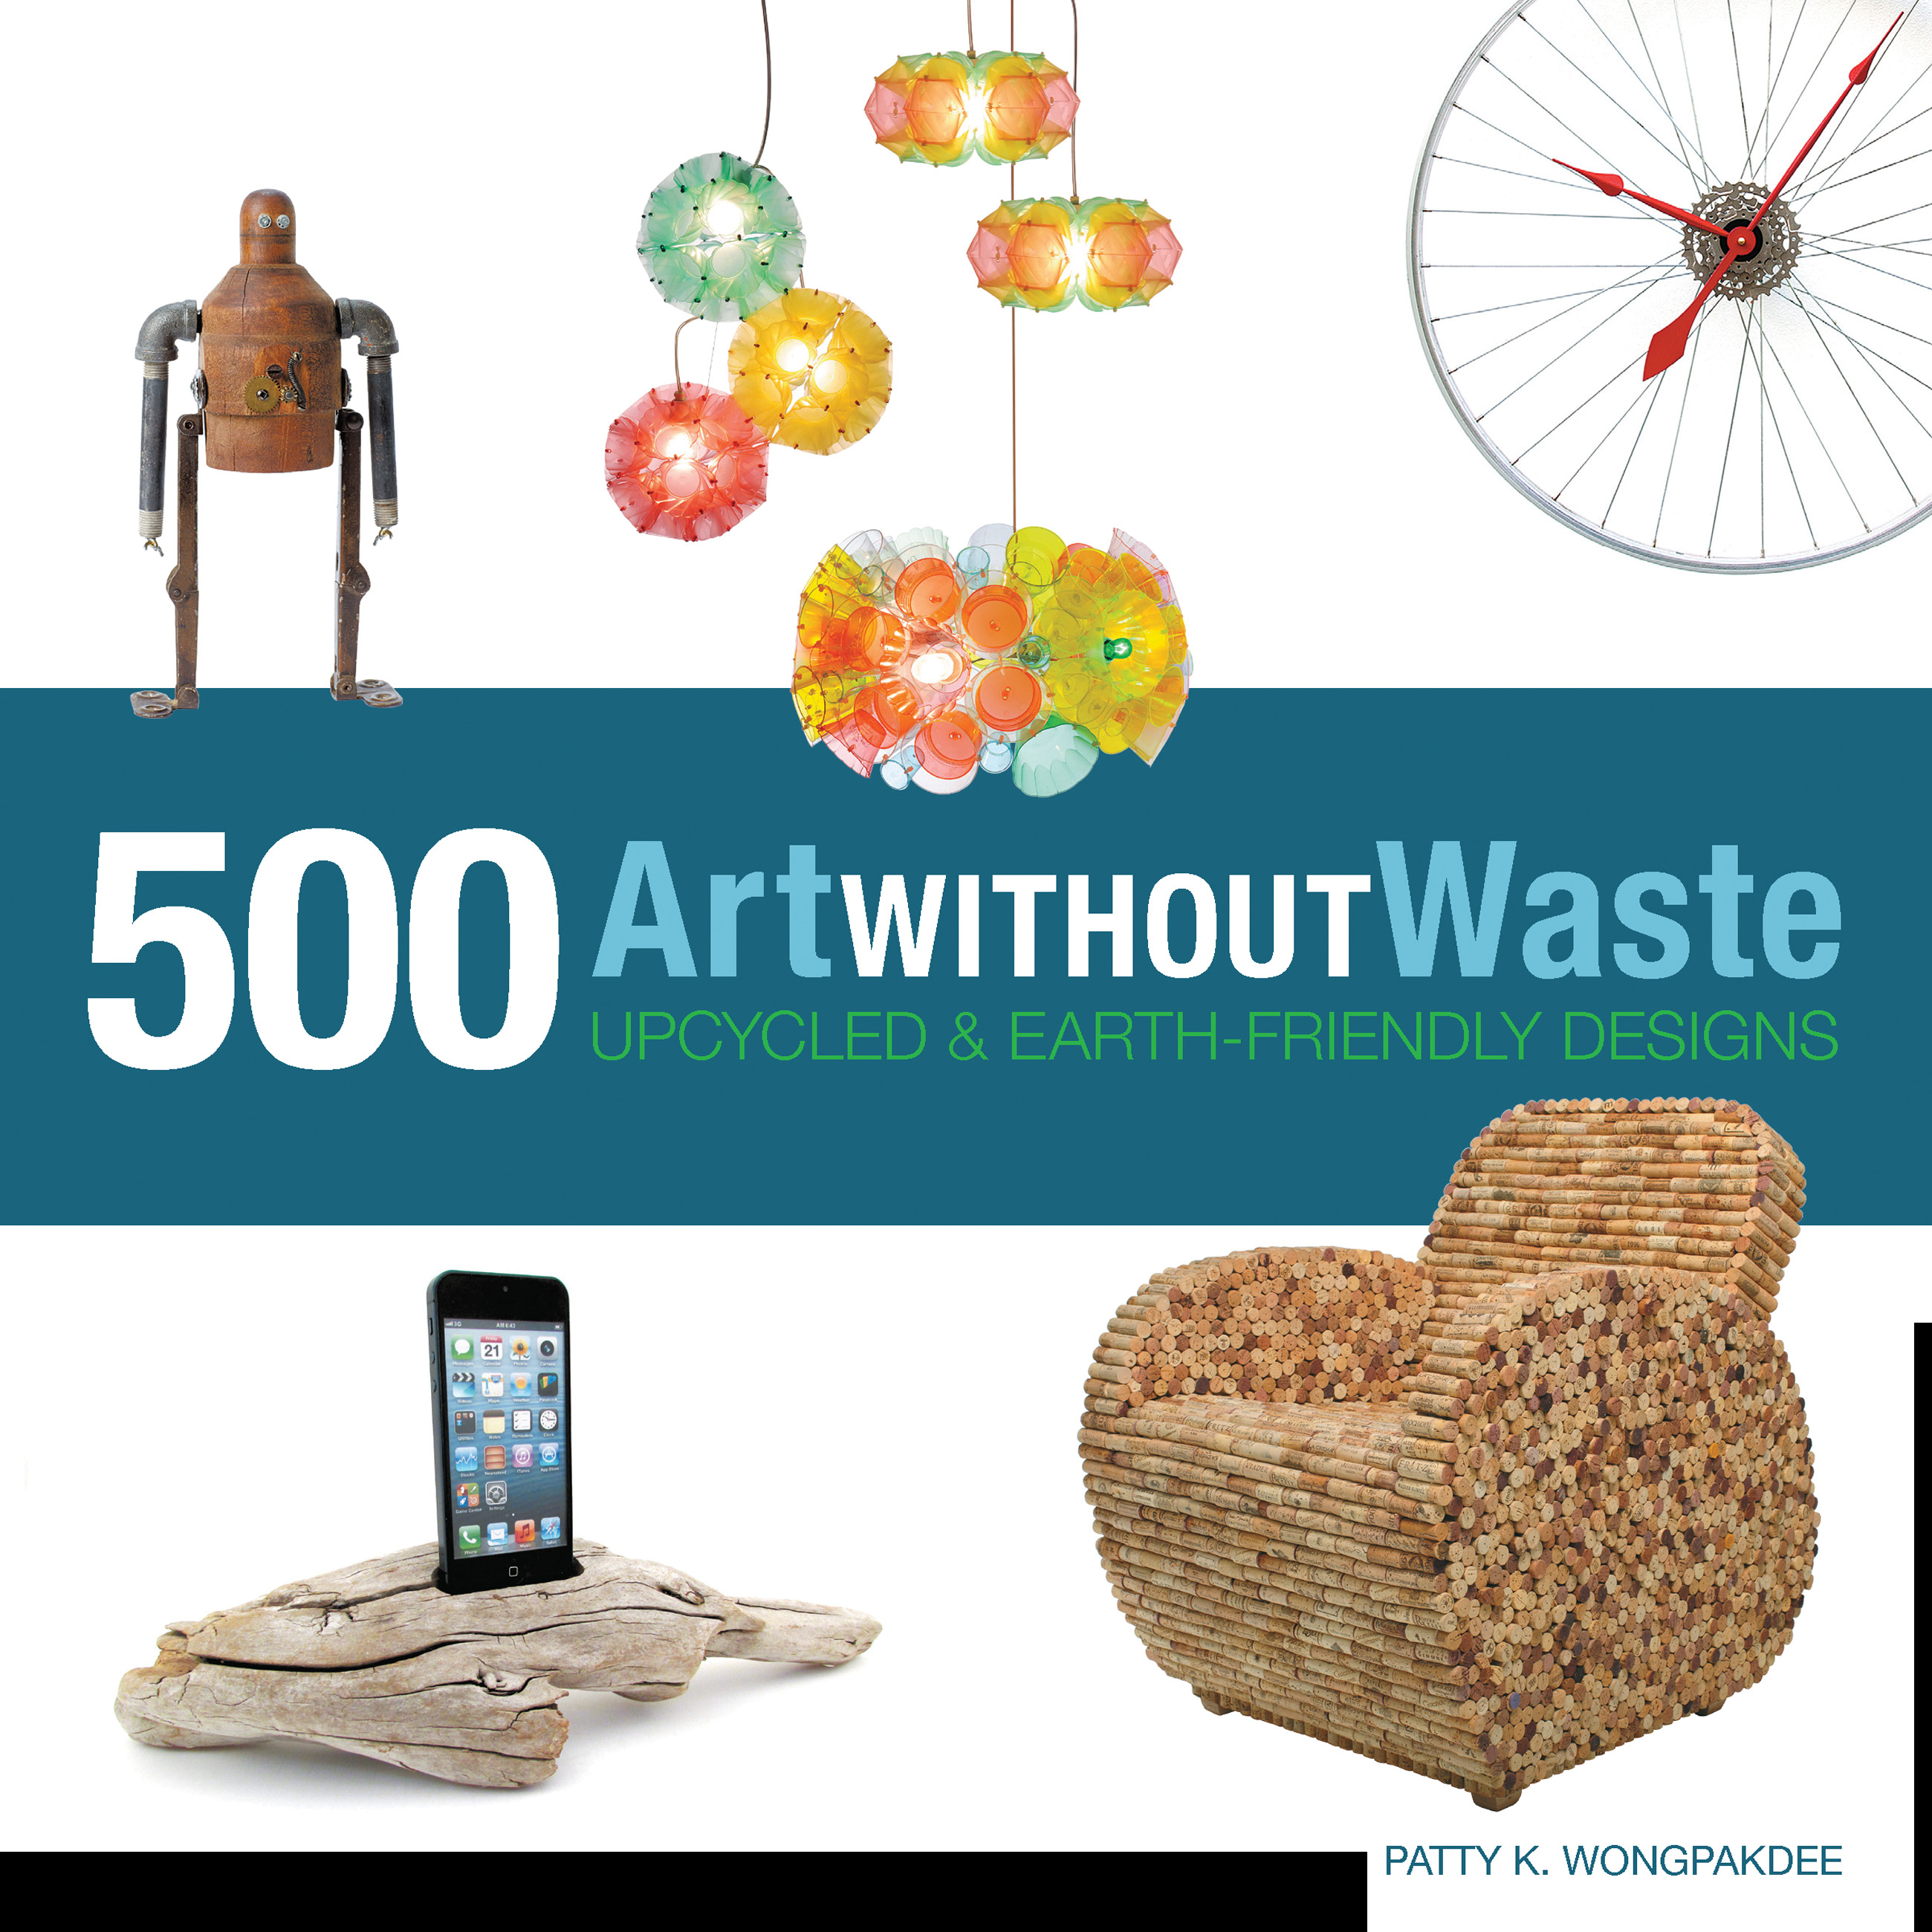 Art Without Waste: 500 Upcycled and Earth-Friendly Designs ' Patty K Wongpakdee